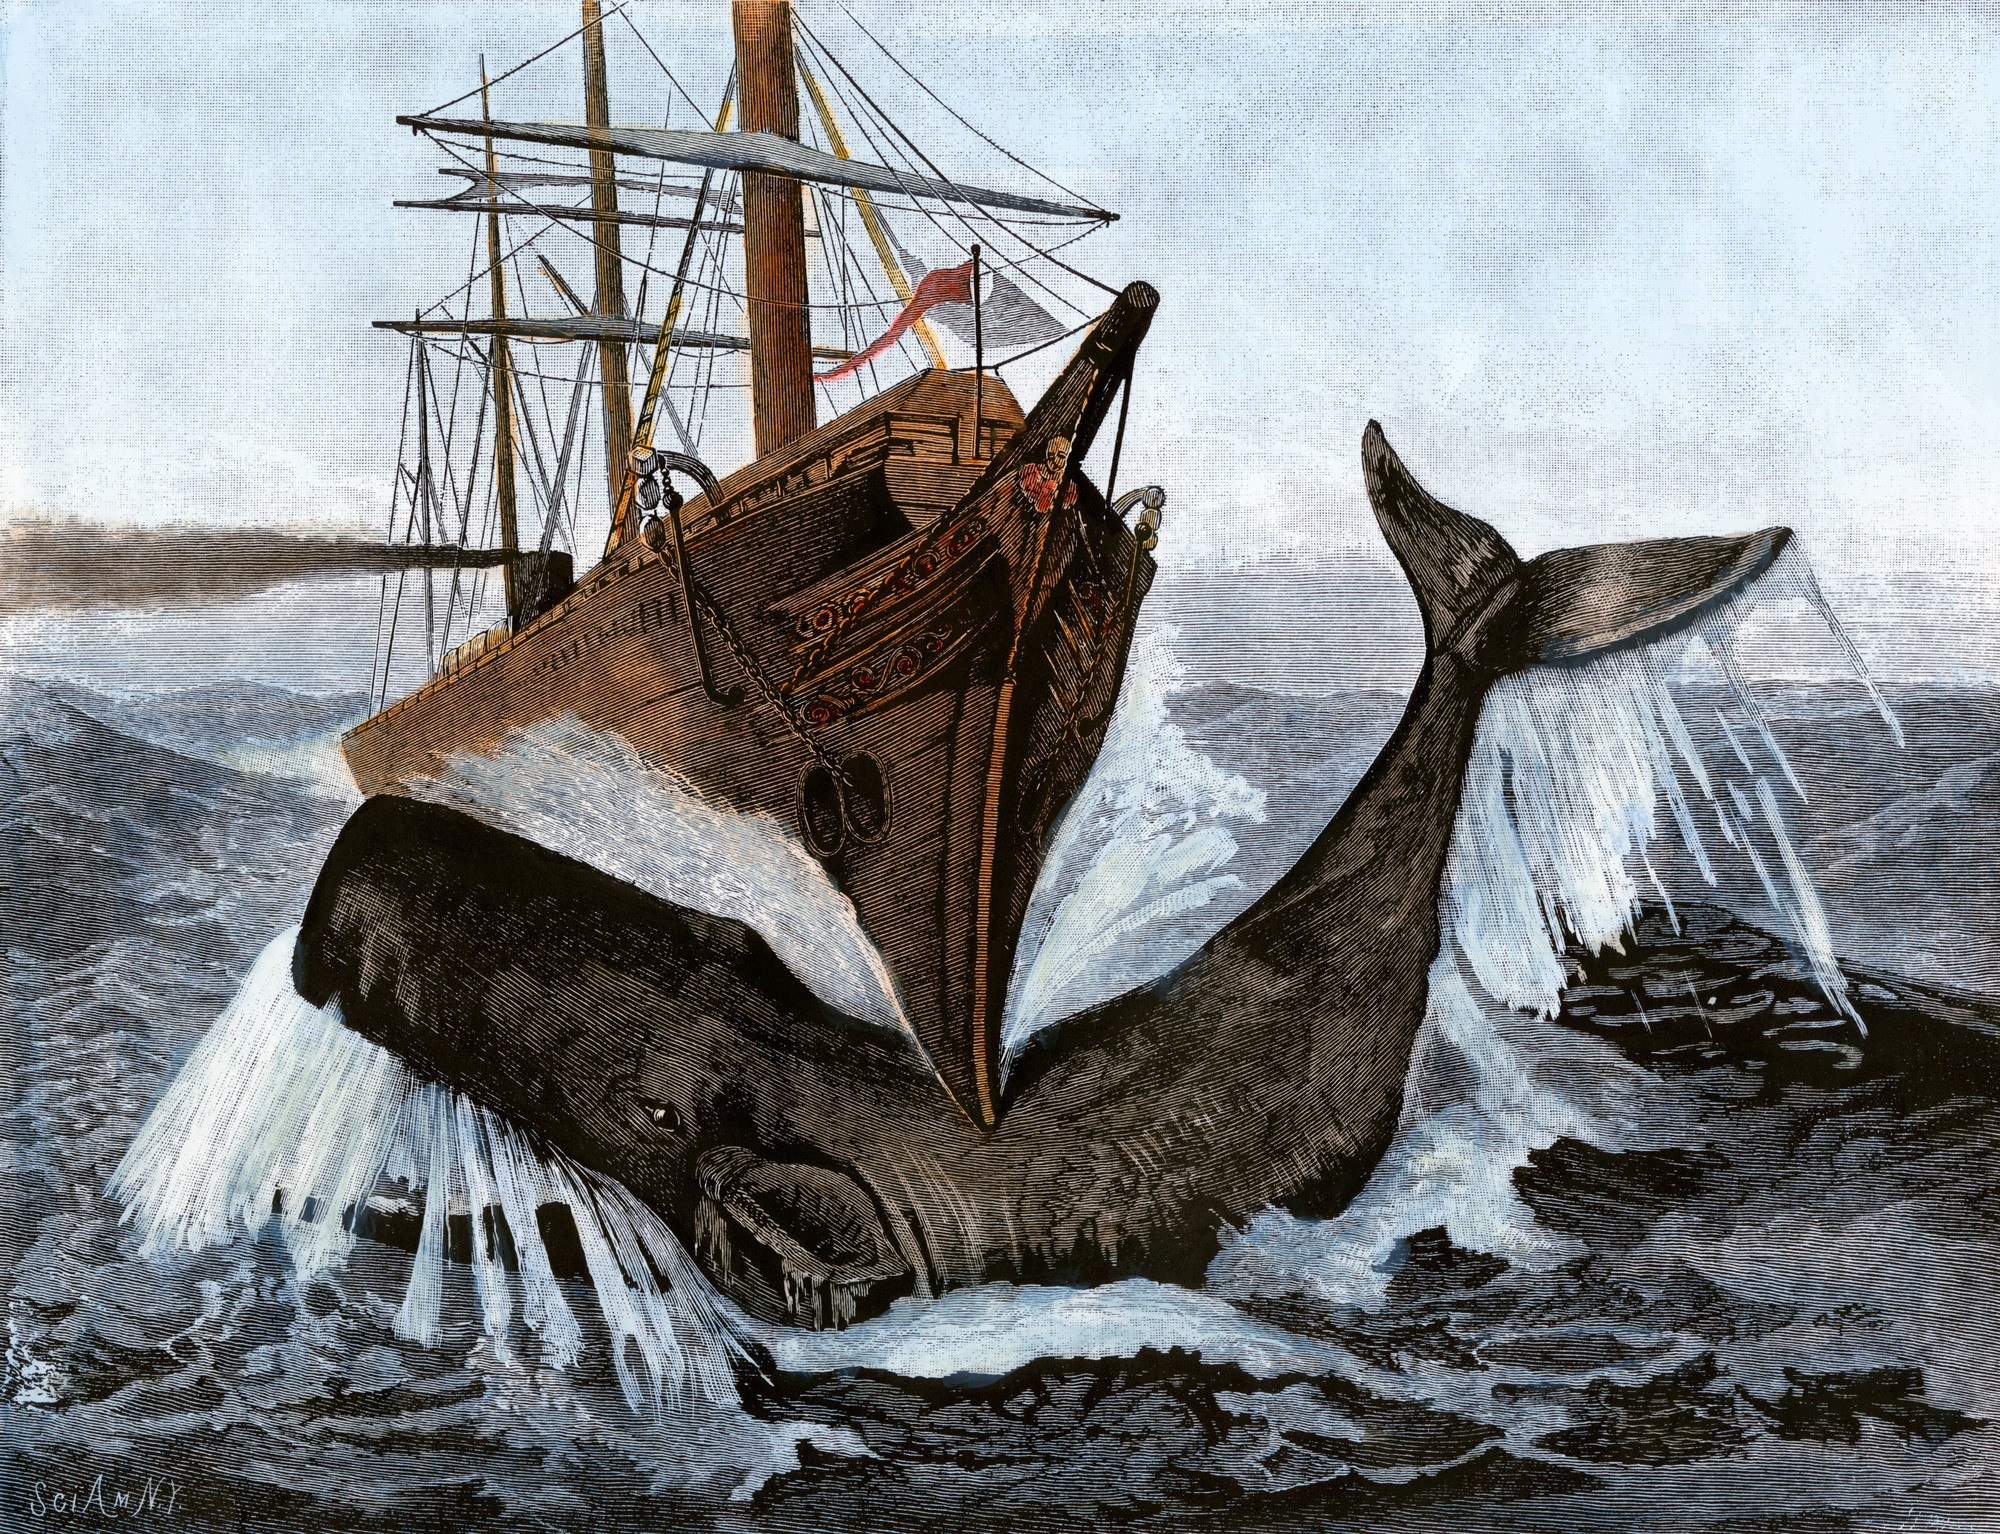 Bow of the ship Essex after striking a whale, 1820.